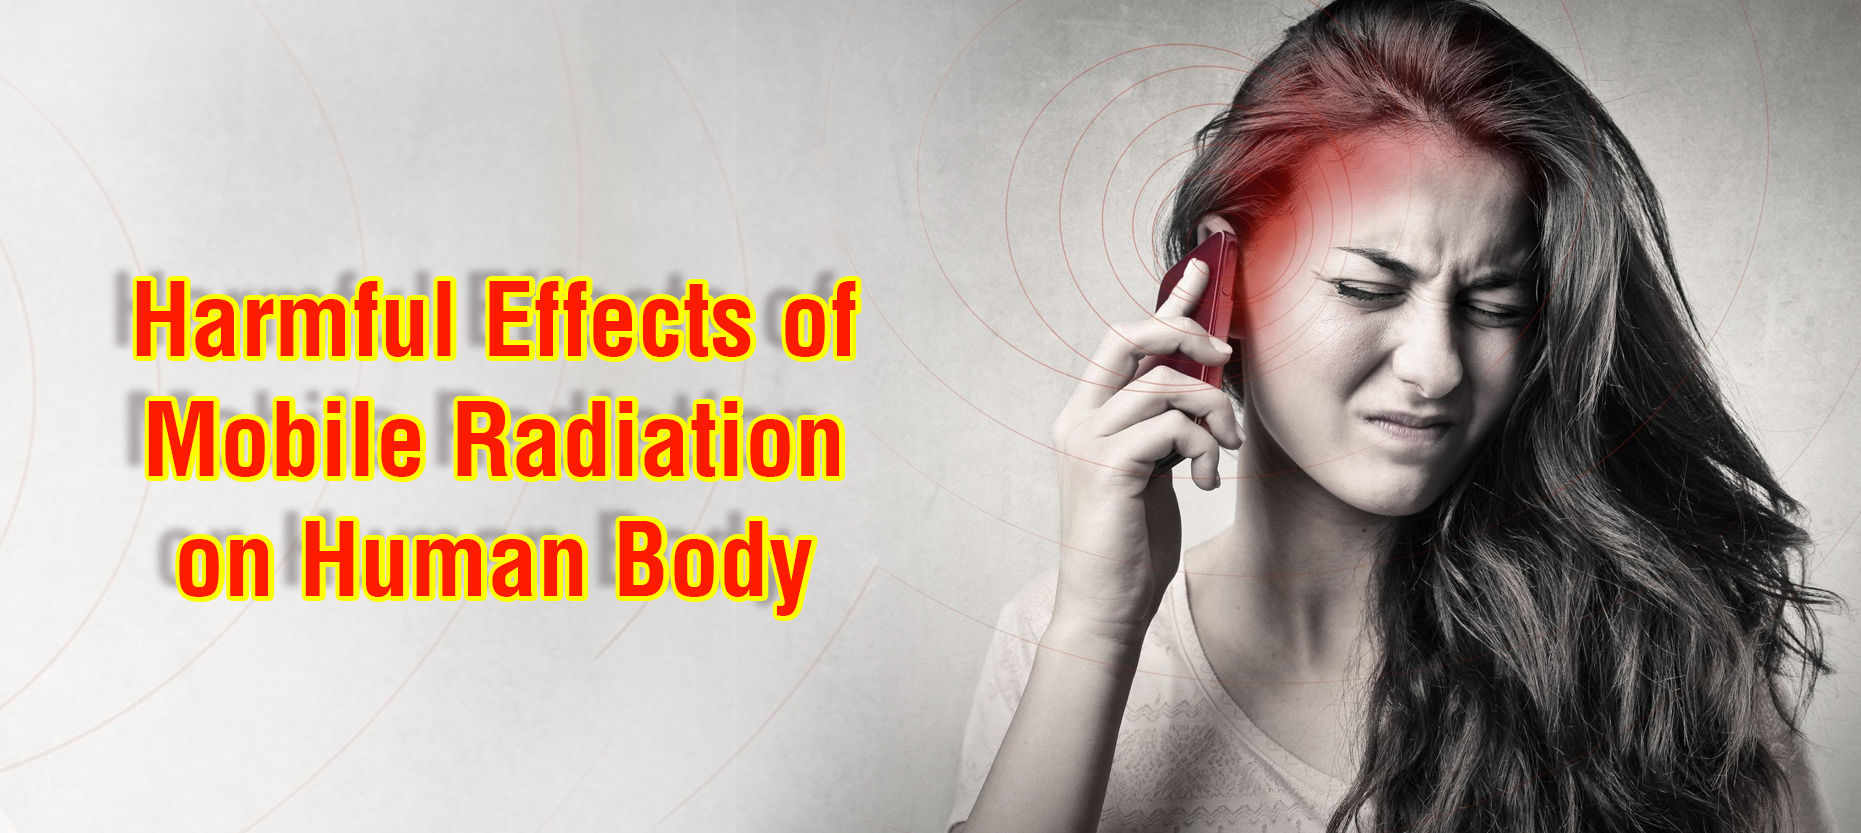 Harmful Effects of Radiation on Human Body